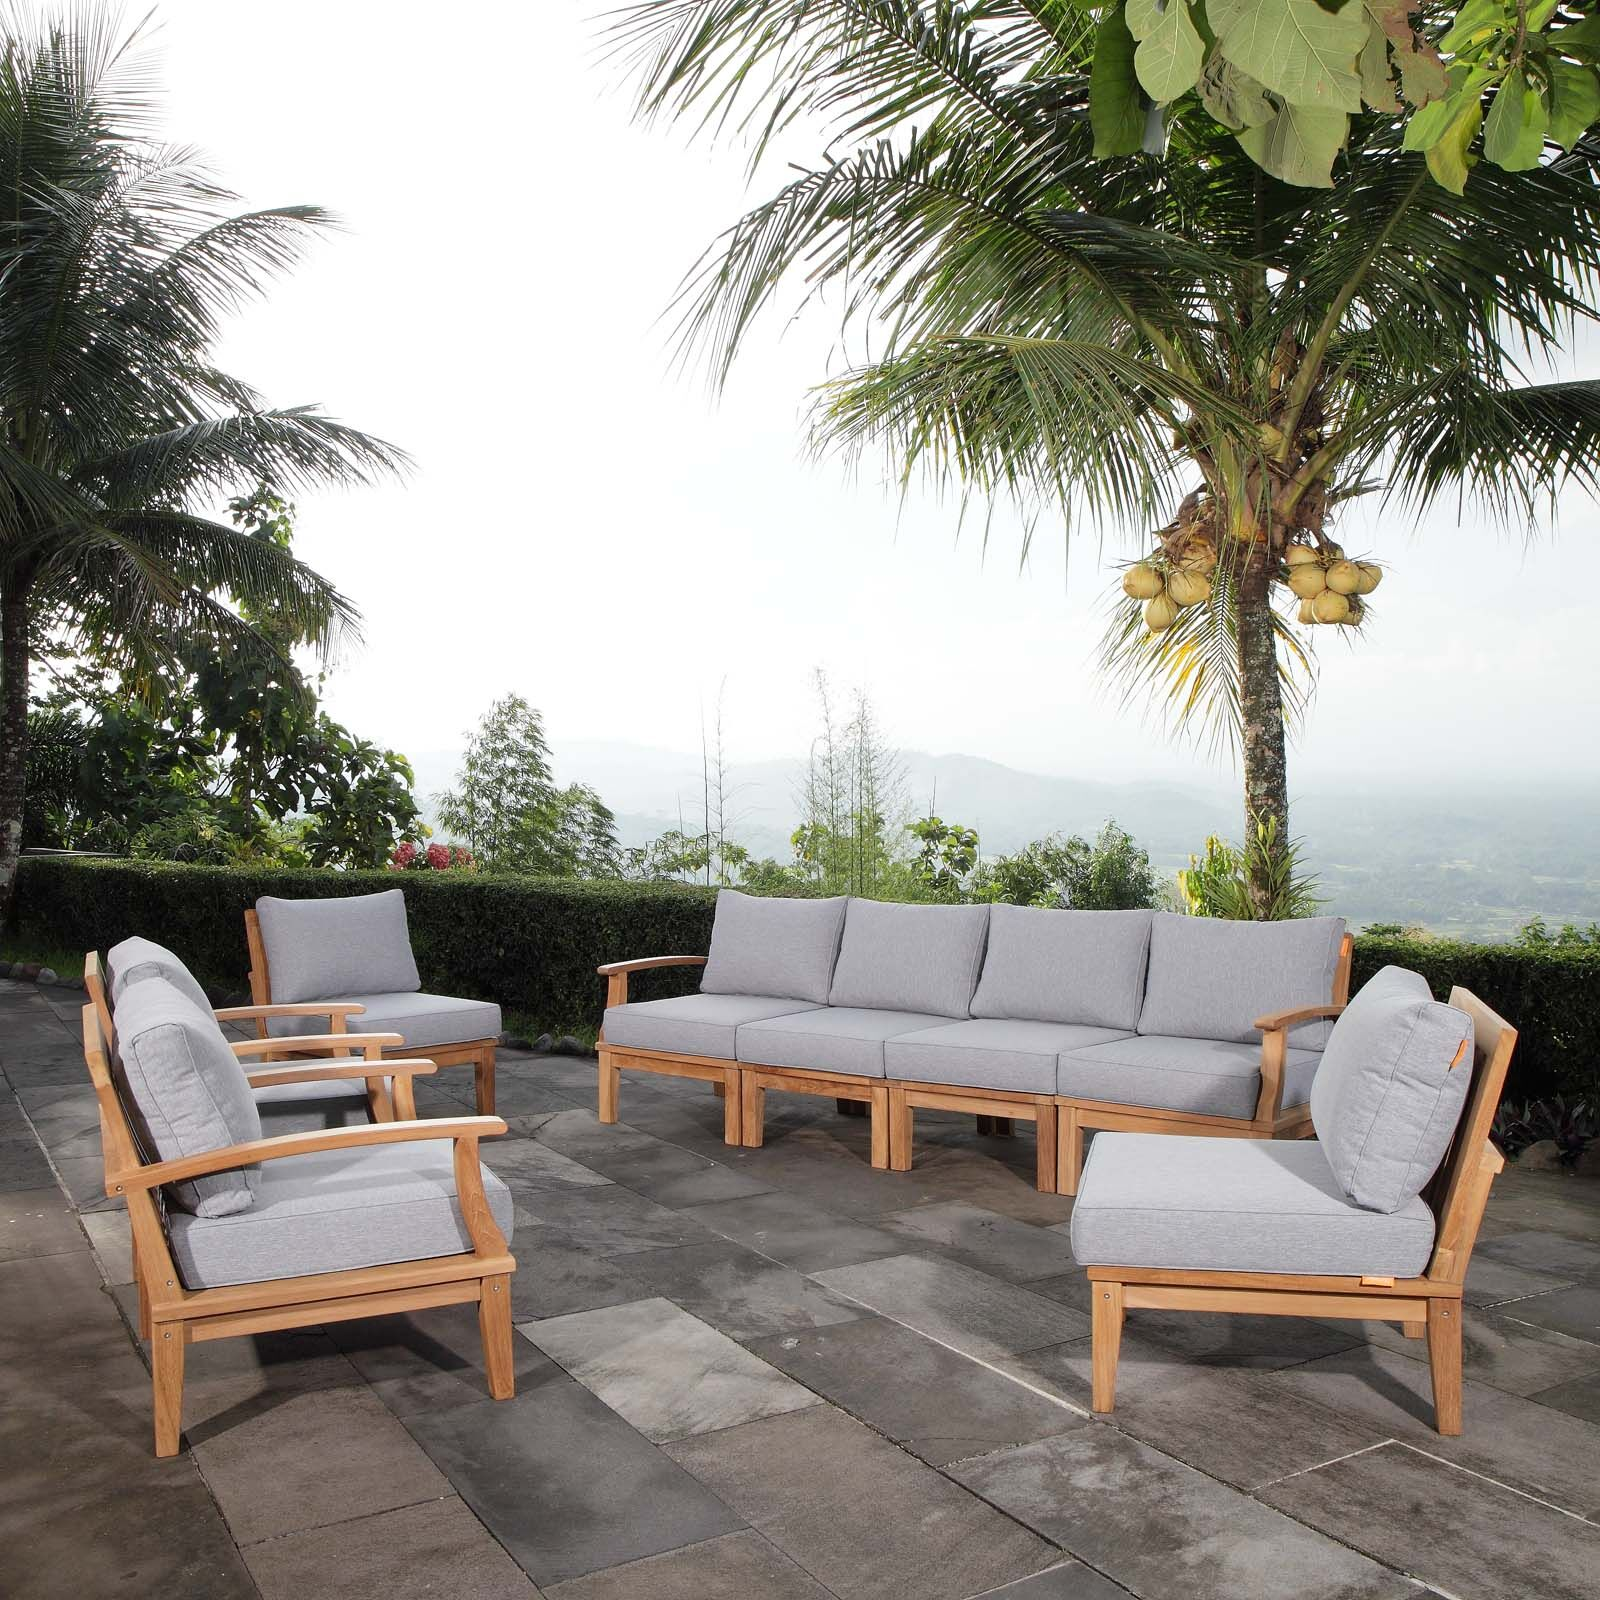 Elaina Outdoor Patio 8 Piece Teak Sectional Seating Group with Cushion Cushion Color: Gray